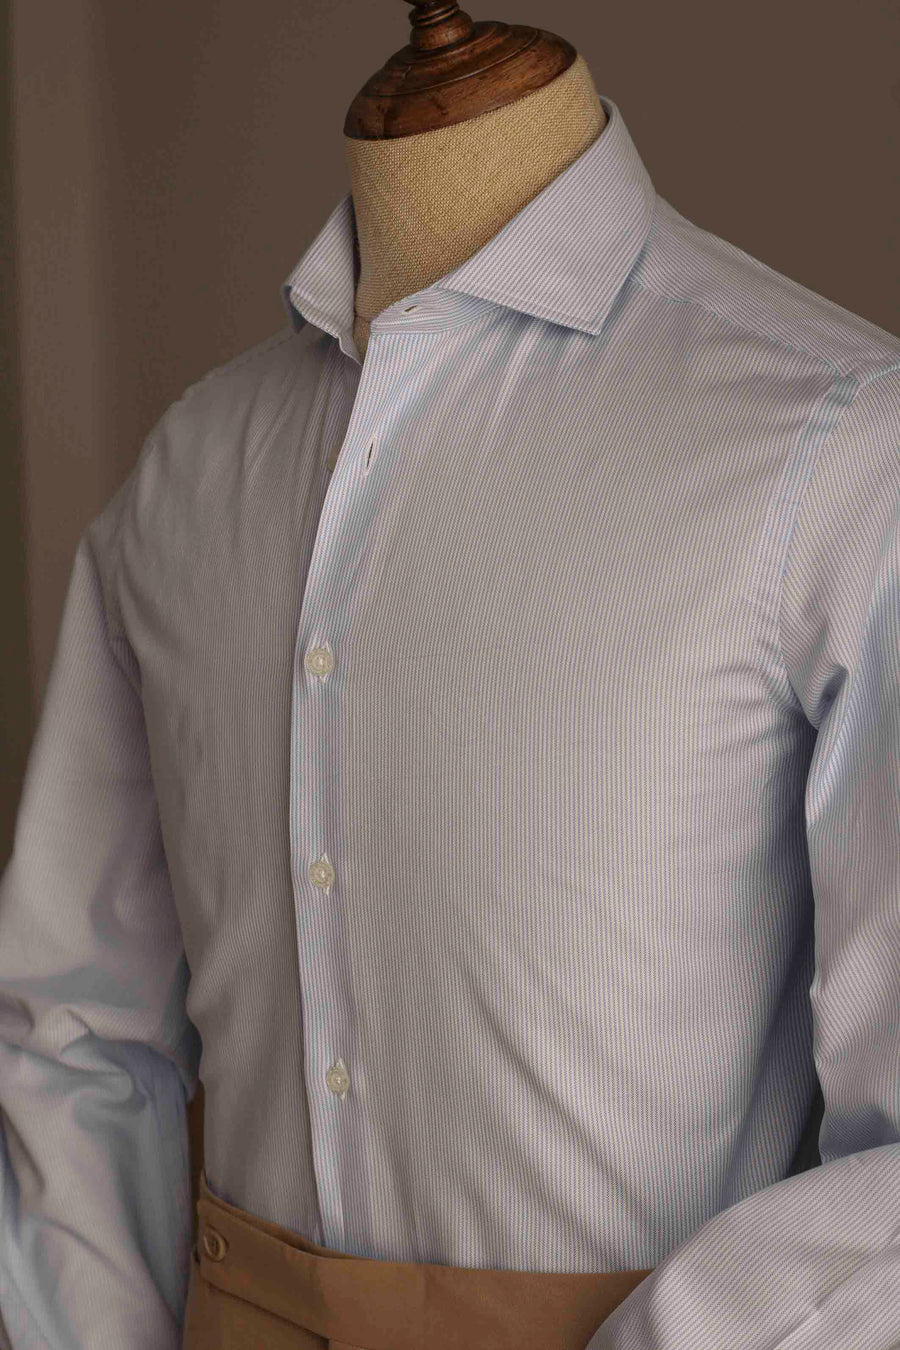 Blue Thousand Stripes Dress Shirt Without Cufflinks